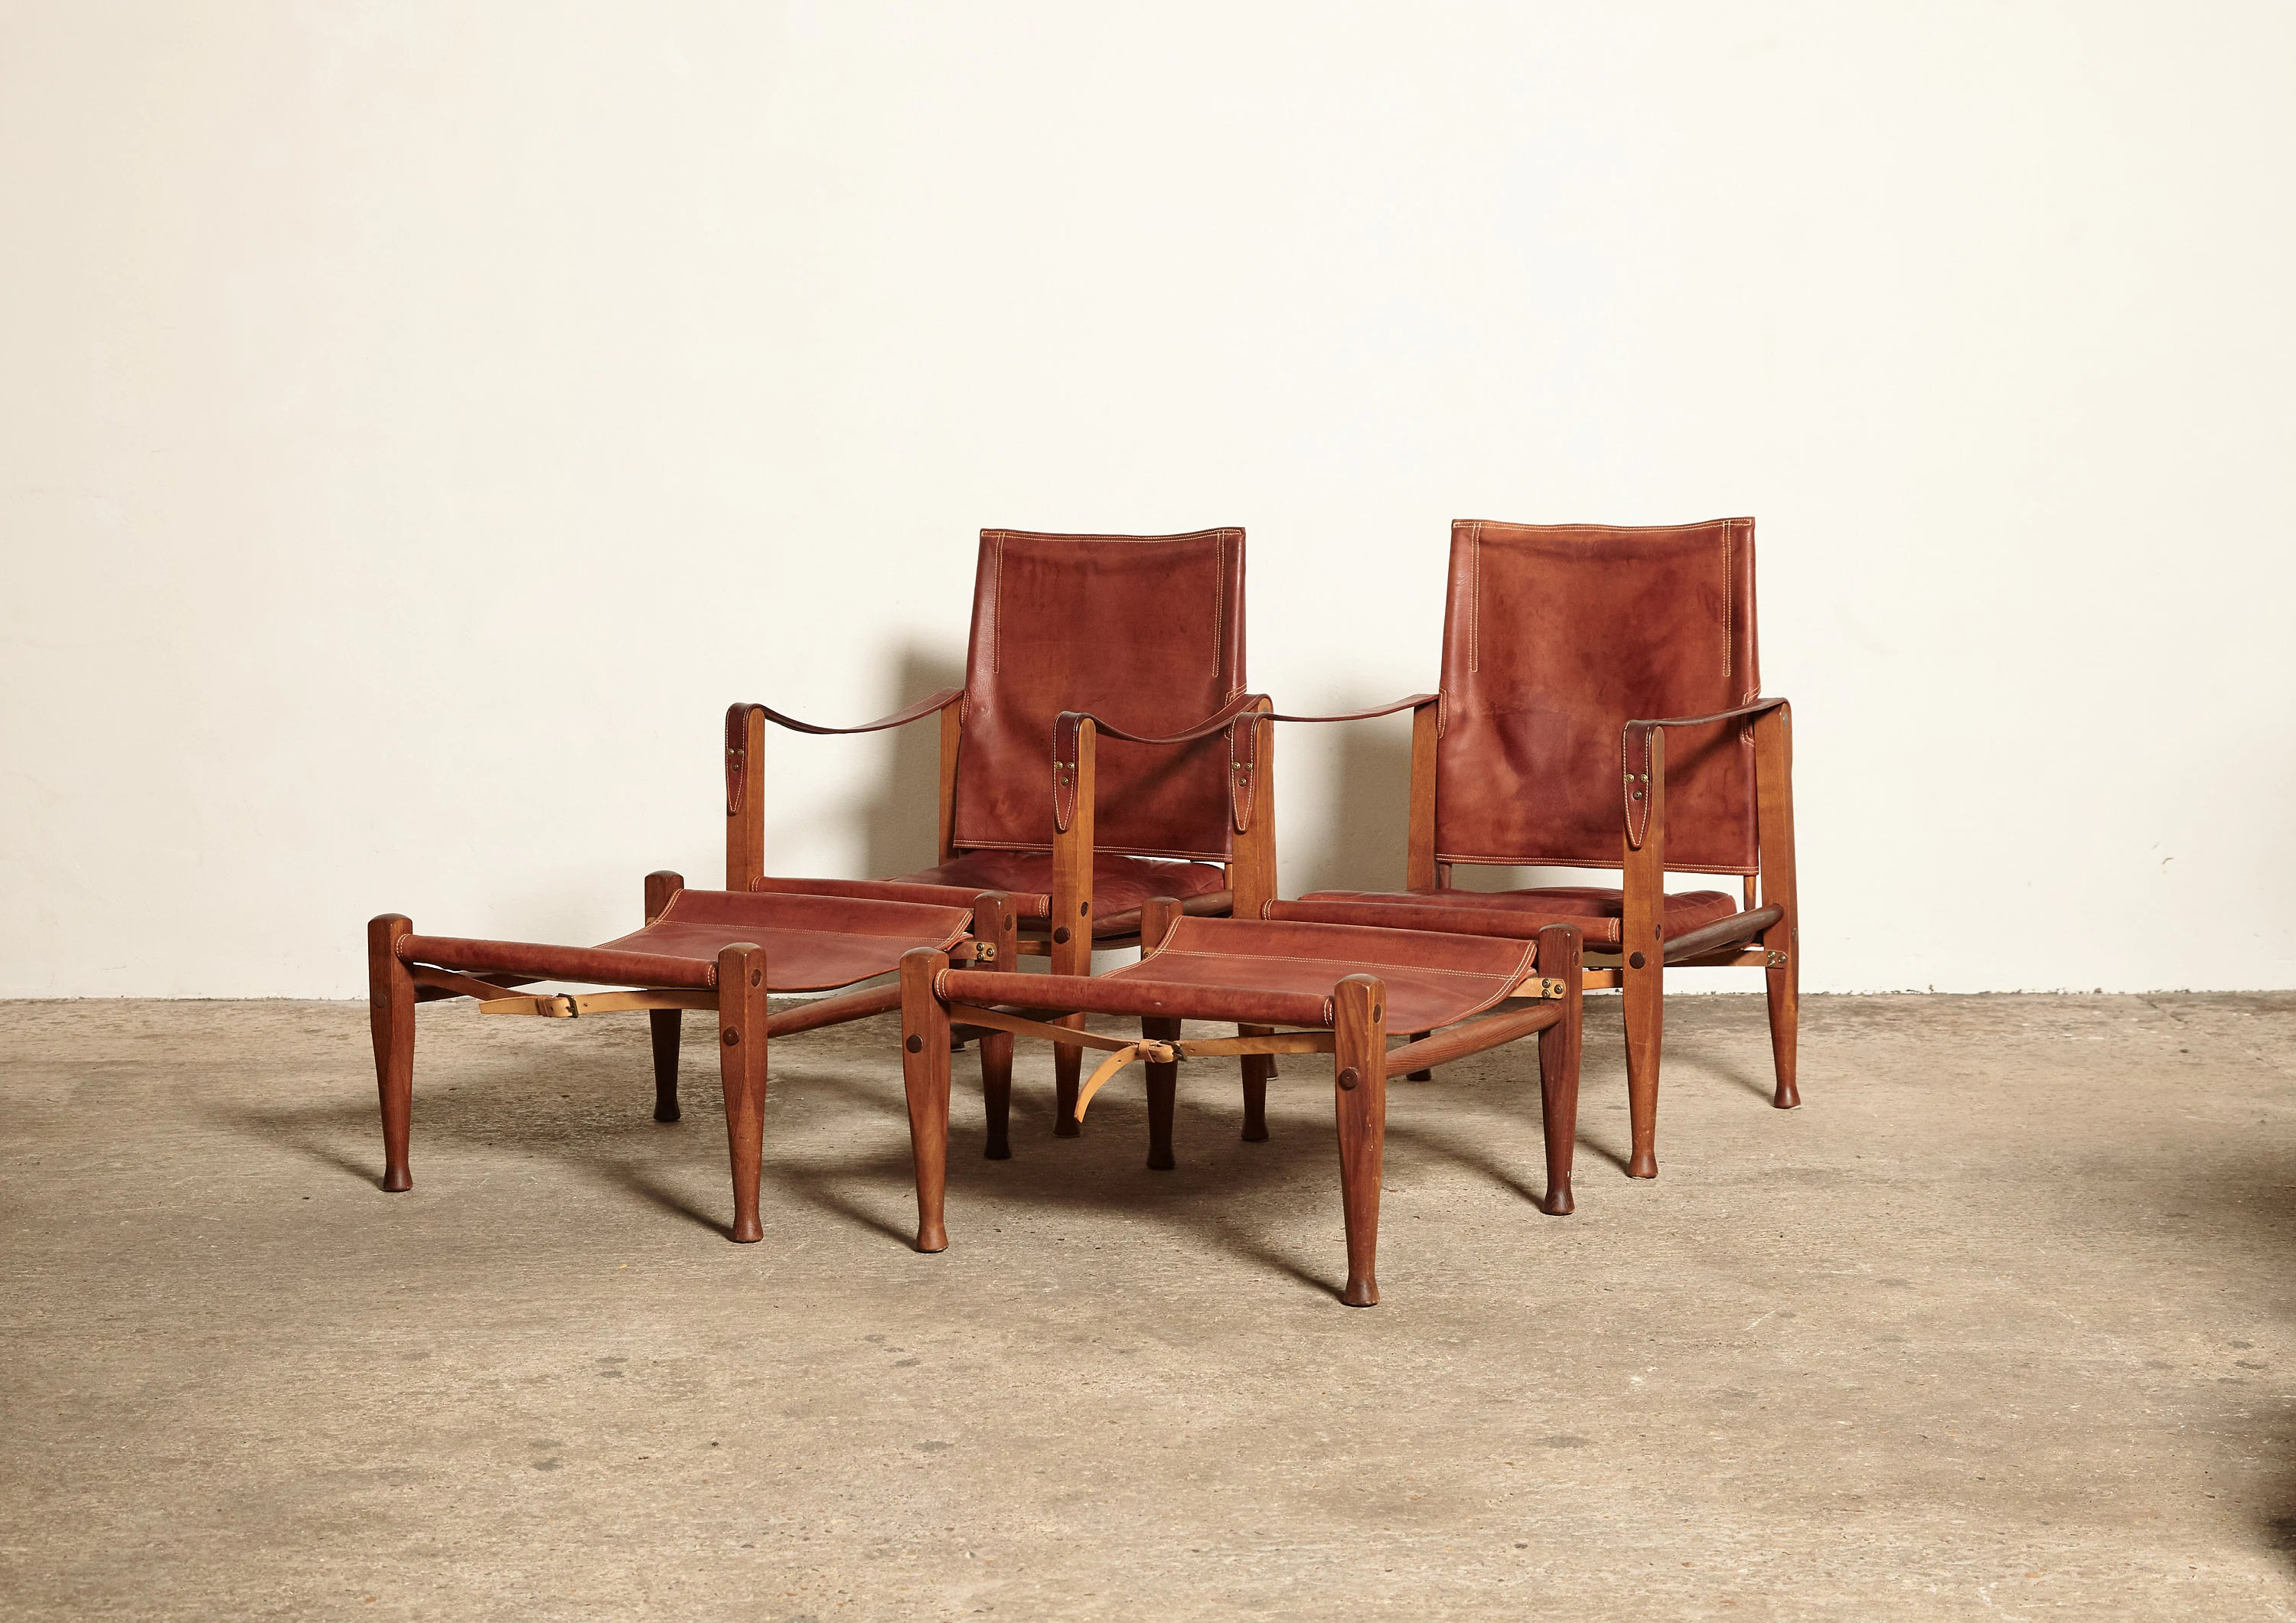 Safari Chairs A Rare Pair Of Kaare Klint Safari Chairs With Ottomans Rud Rasmussen Denmark 1950s Free Shipping Worldwide